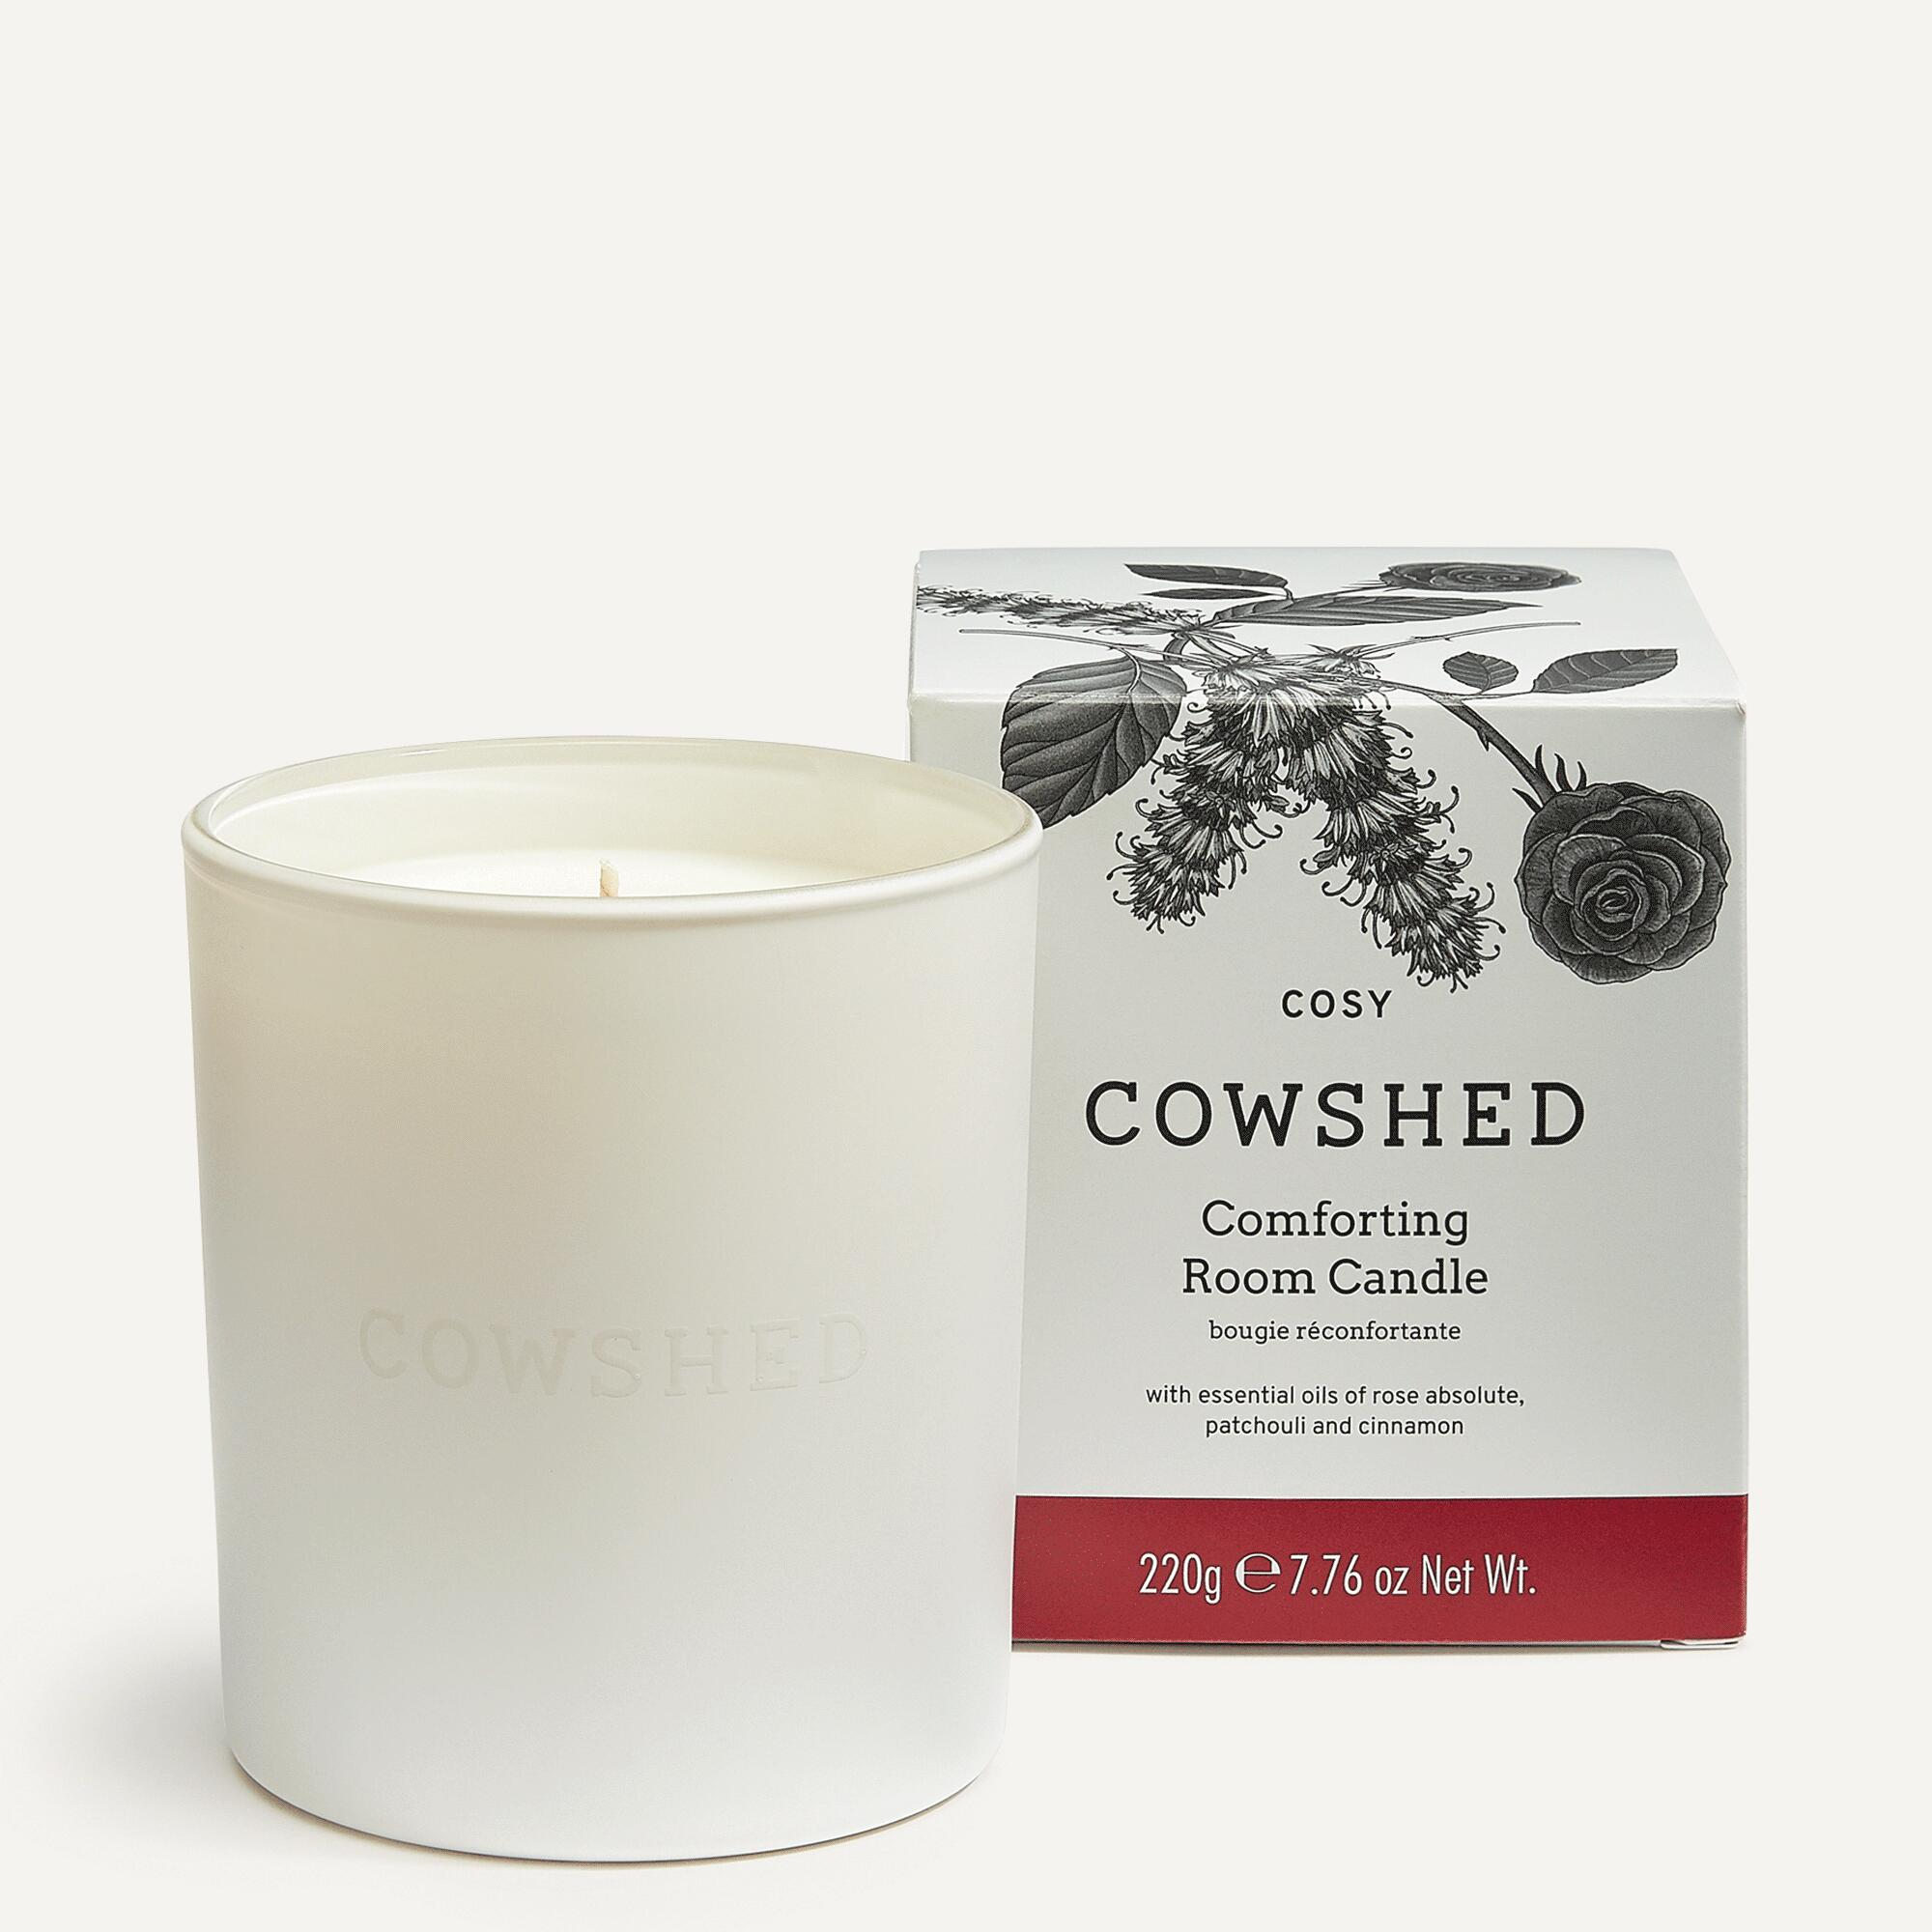 Cowshed-Cosy-Comforting-Room-Candle-220g